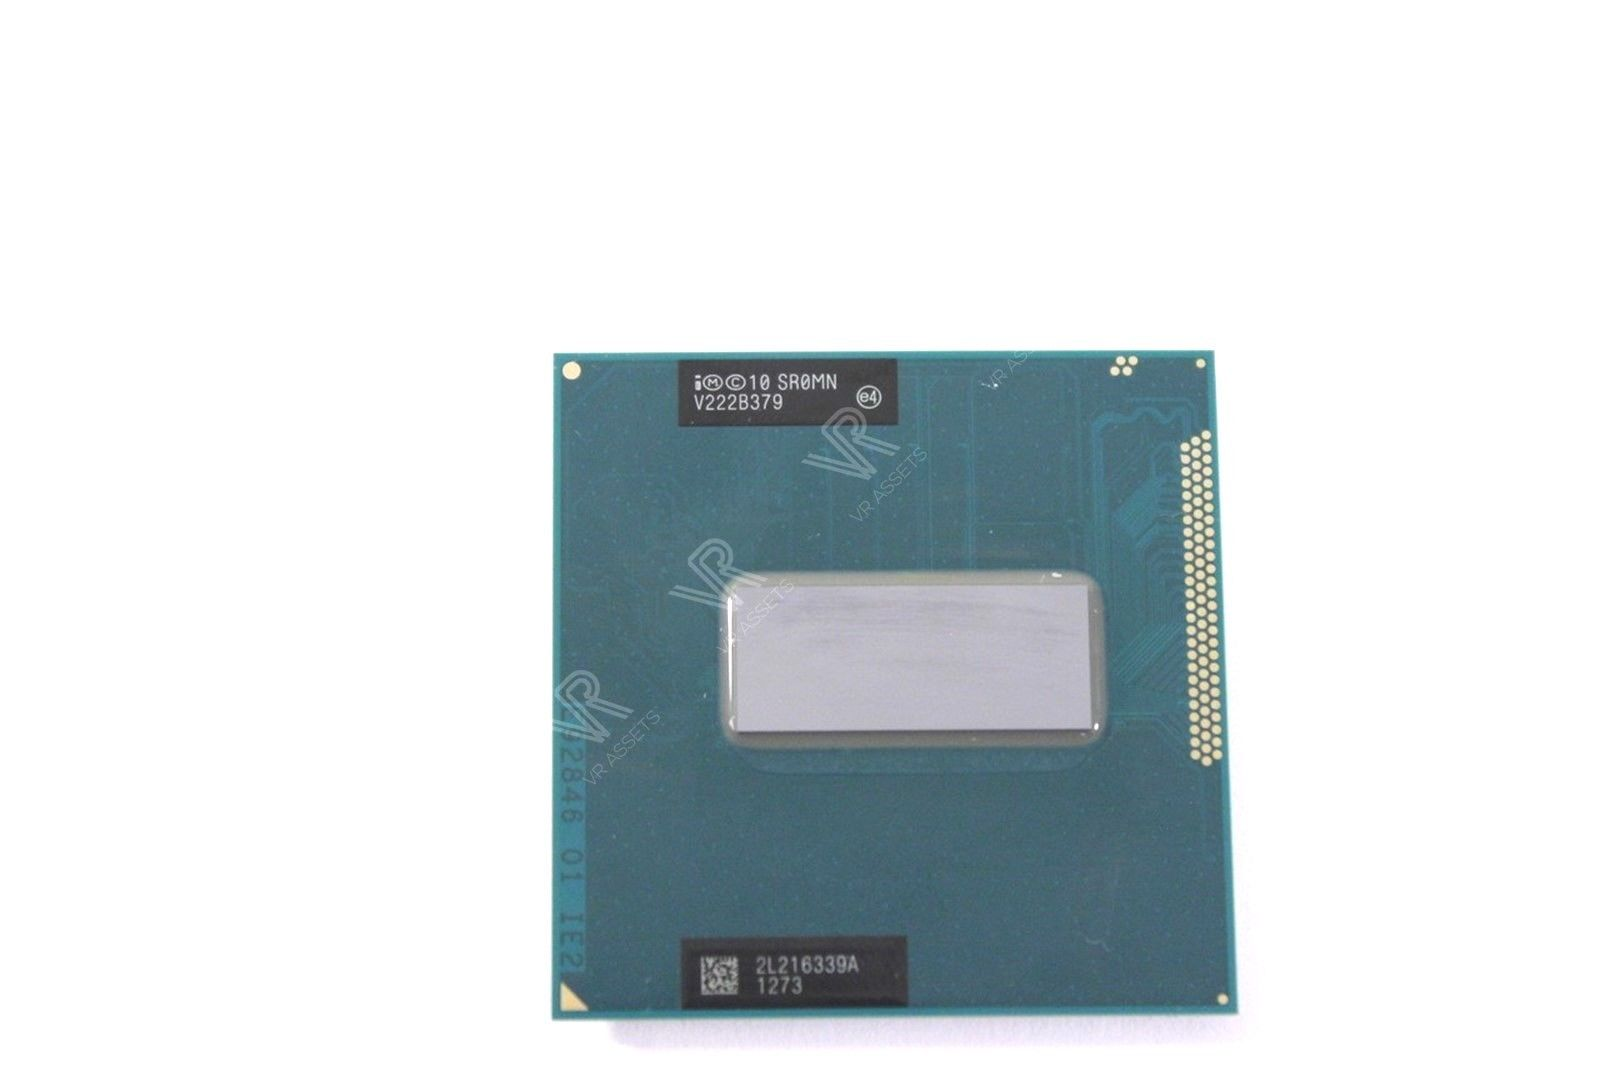 Intel Quad Core i7-3610QM 2.3GHz (3.3GHz Turbo) 6Mb Cache Laptop CPU SR0MN